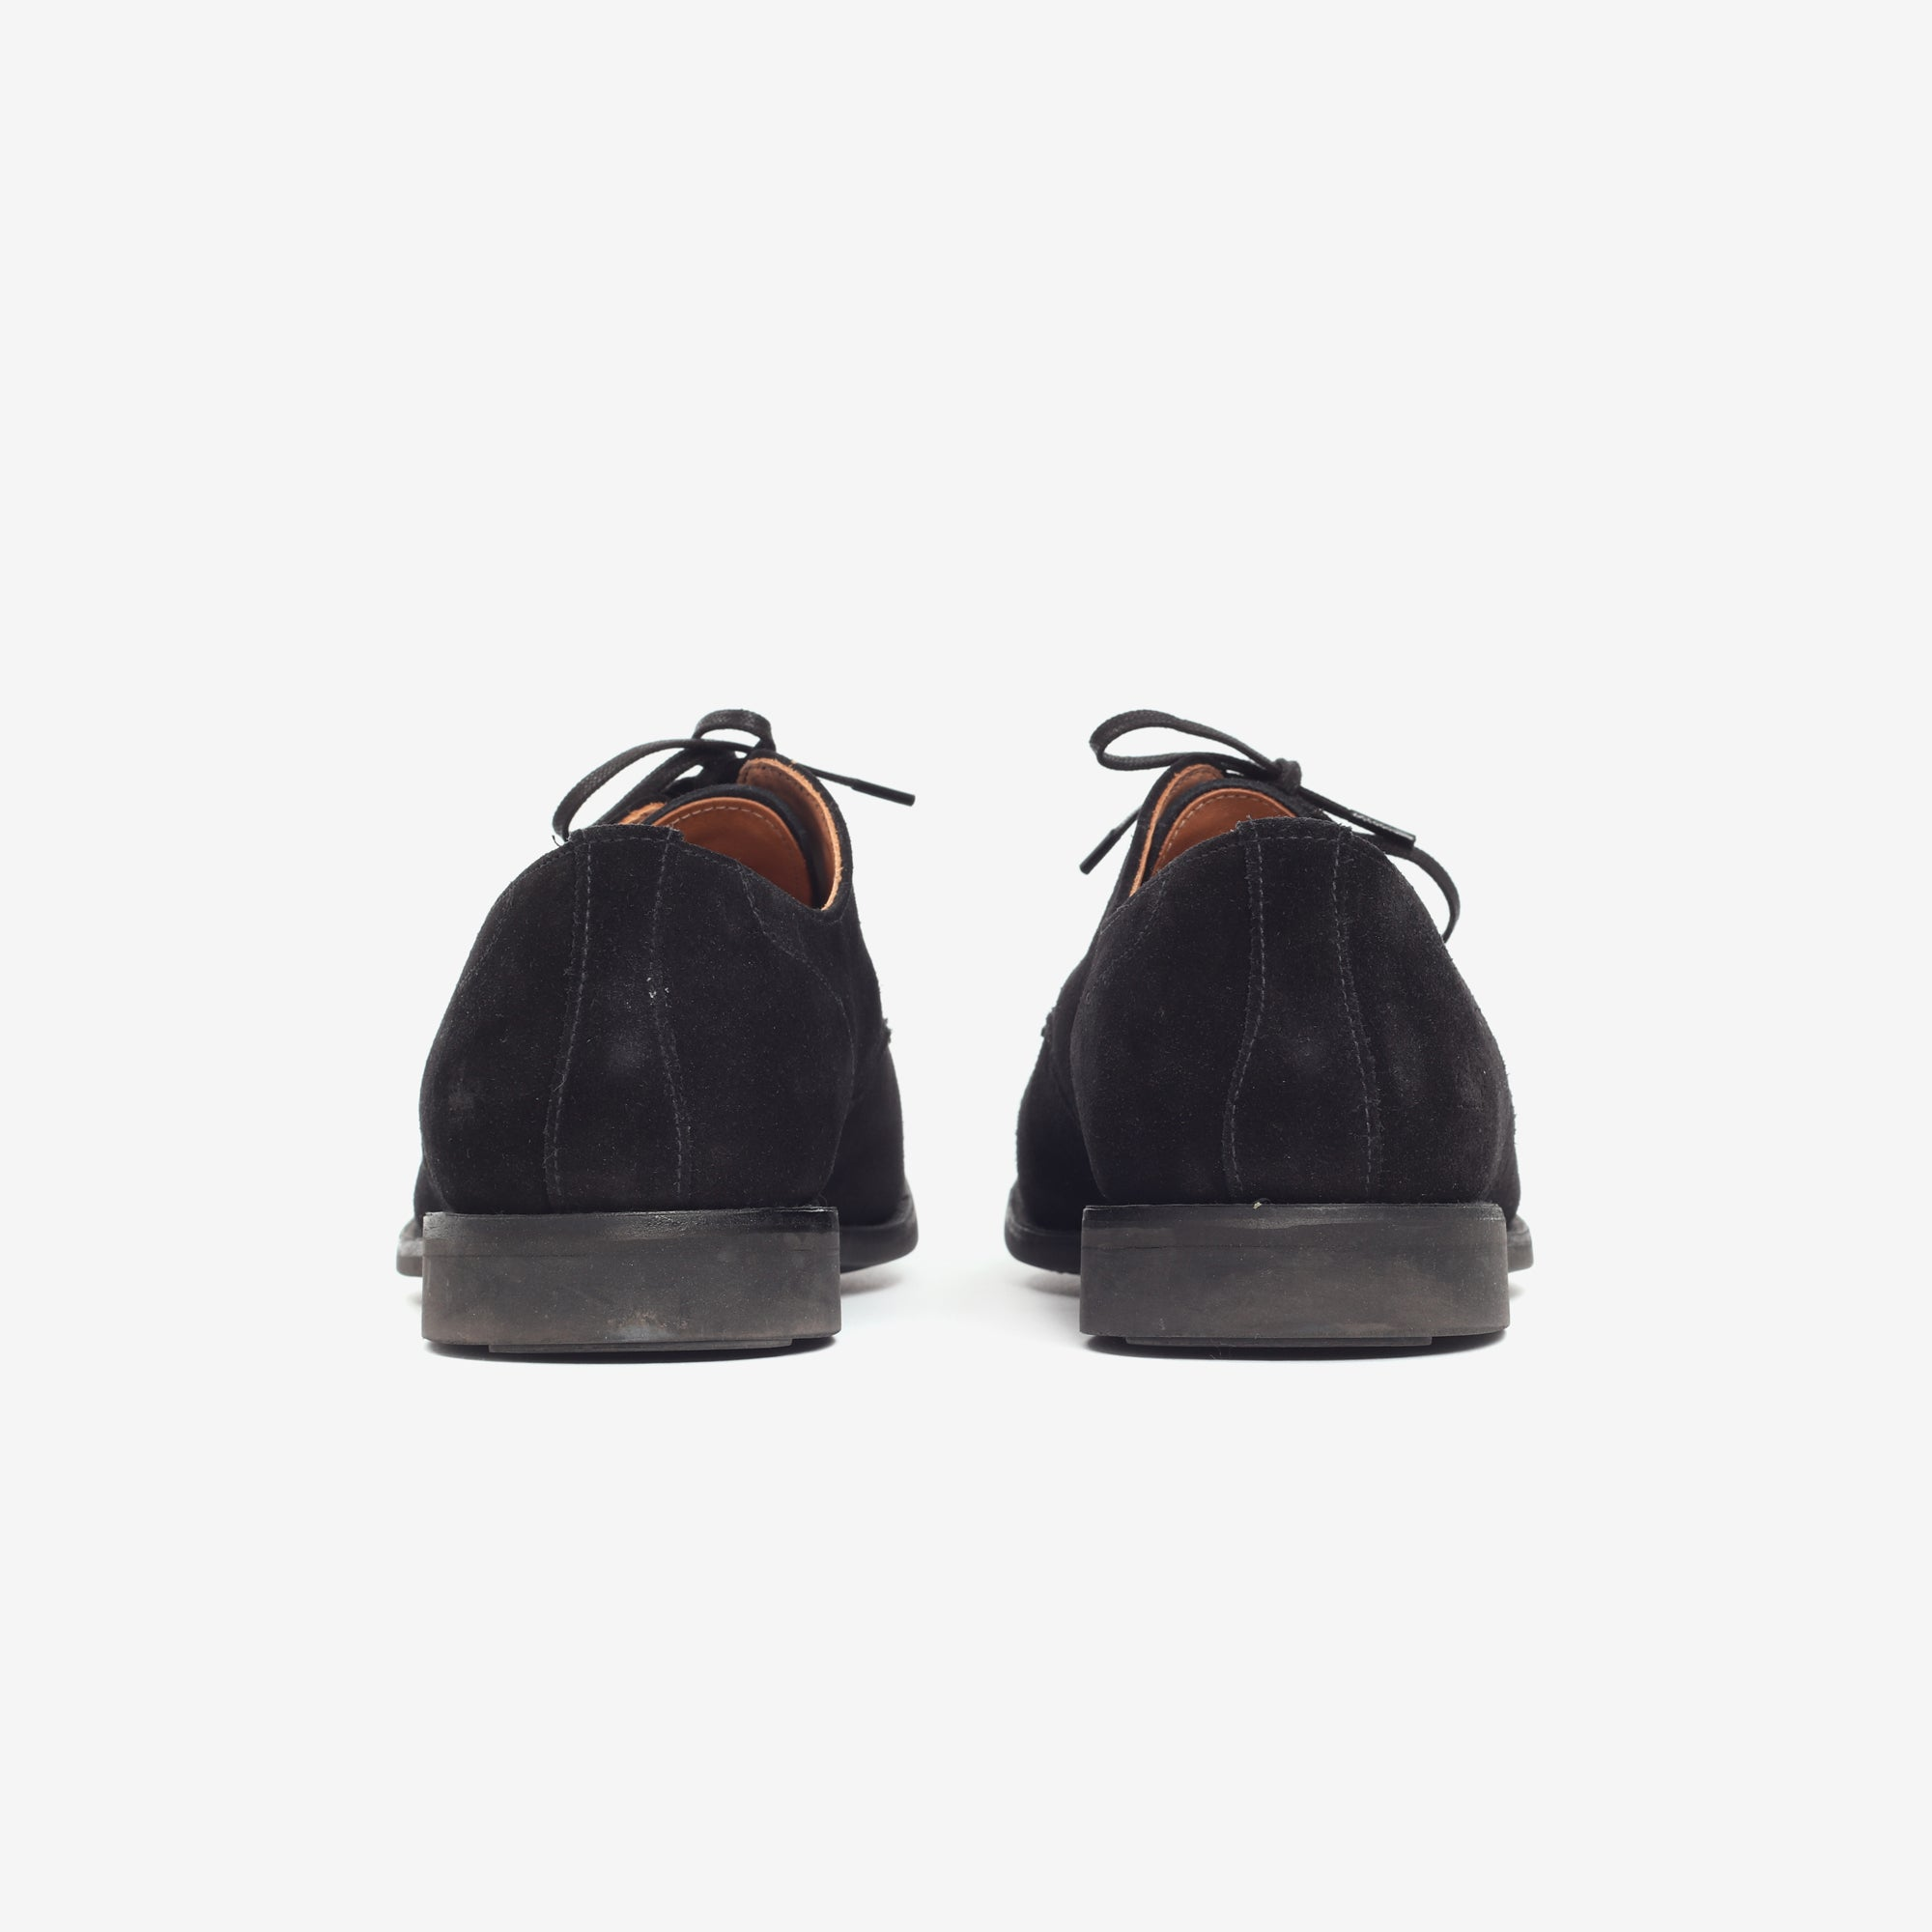 Apron Toe Gibson Shoes